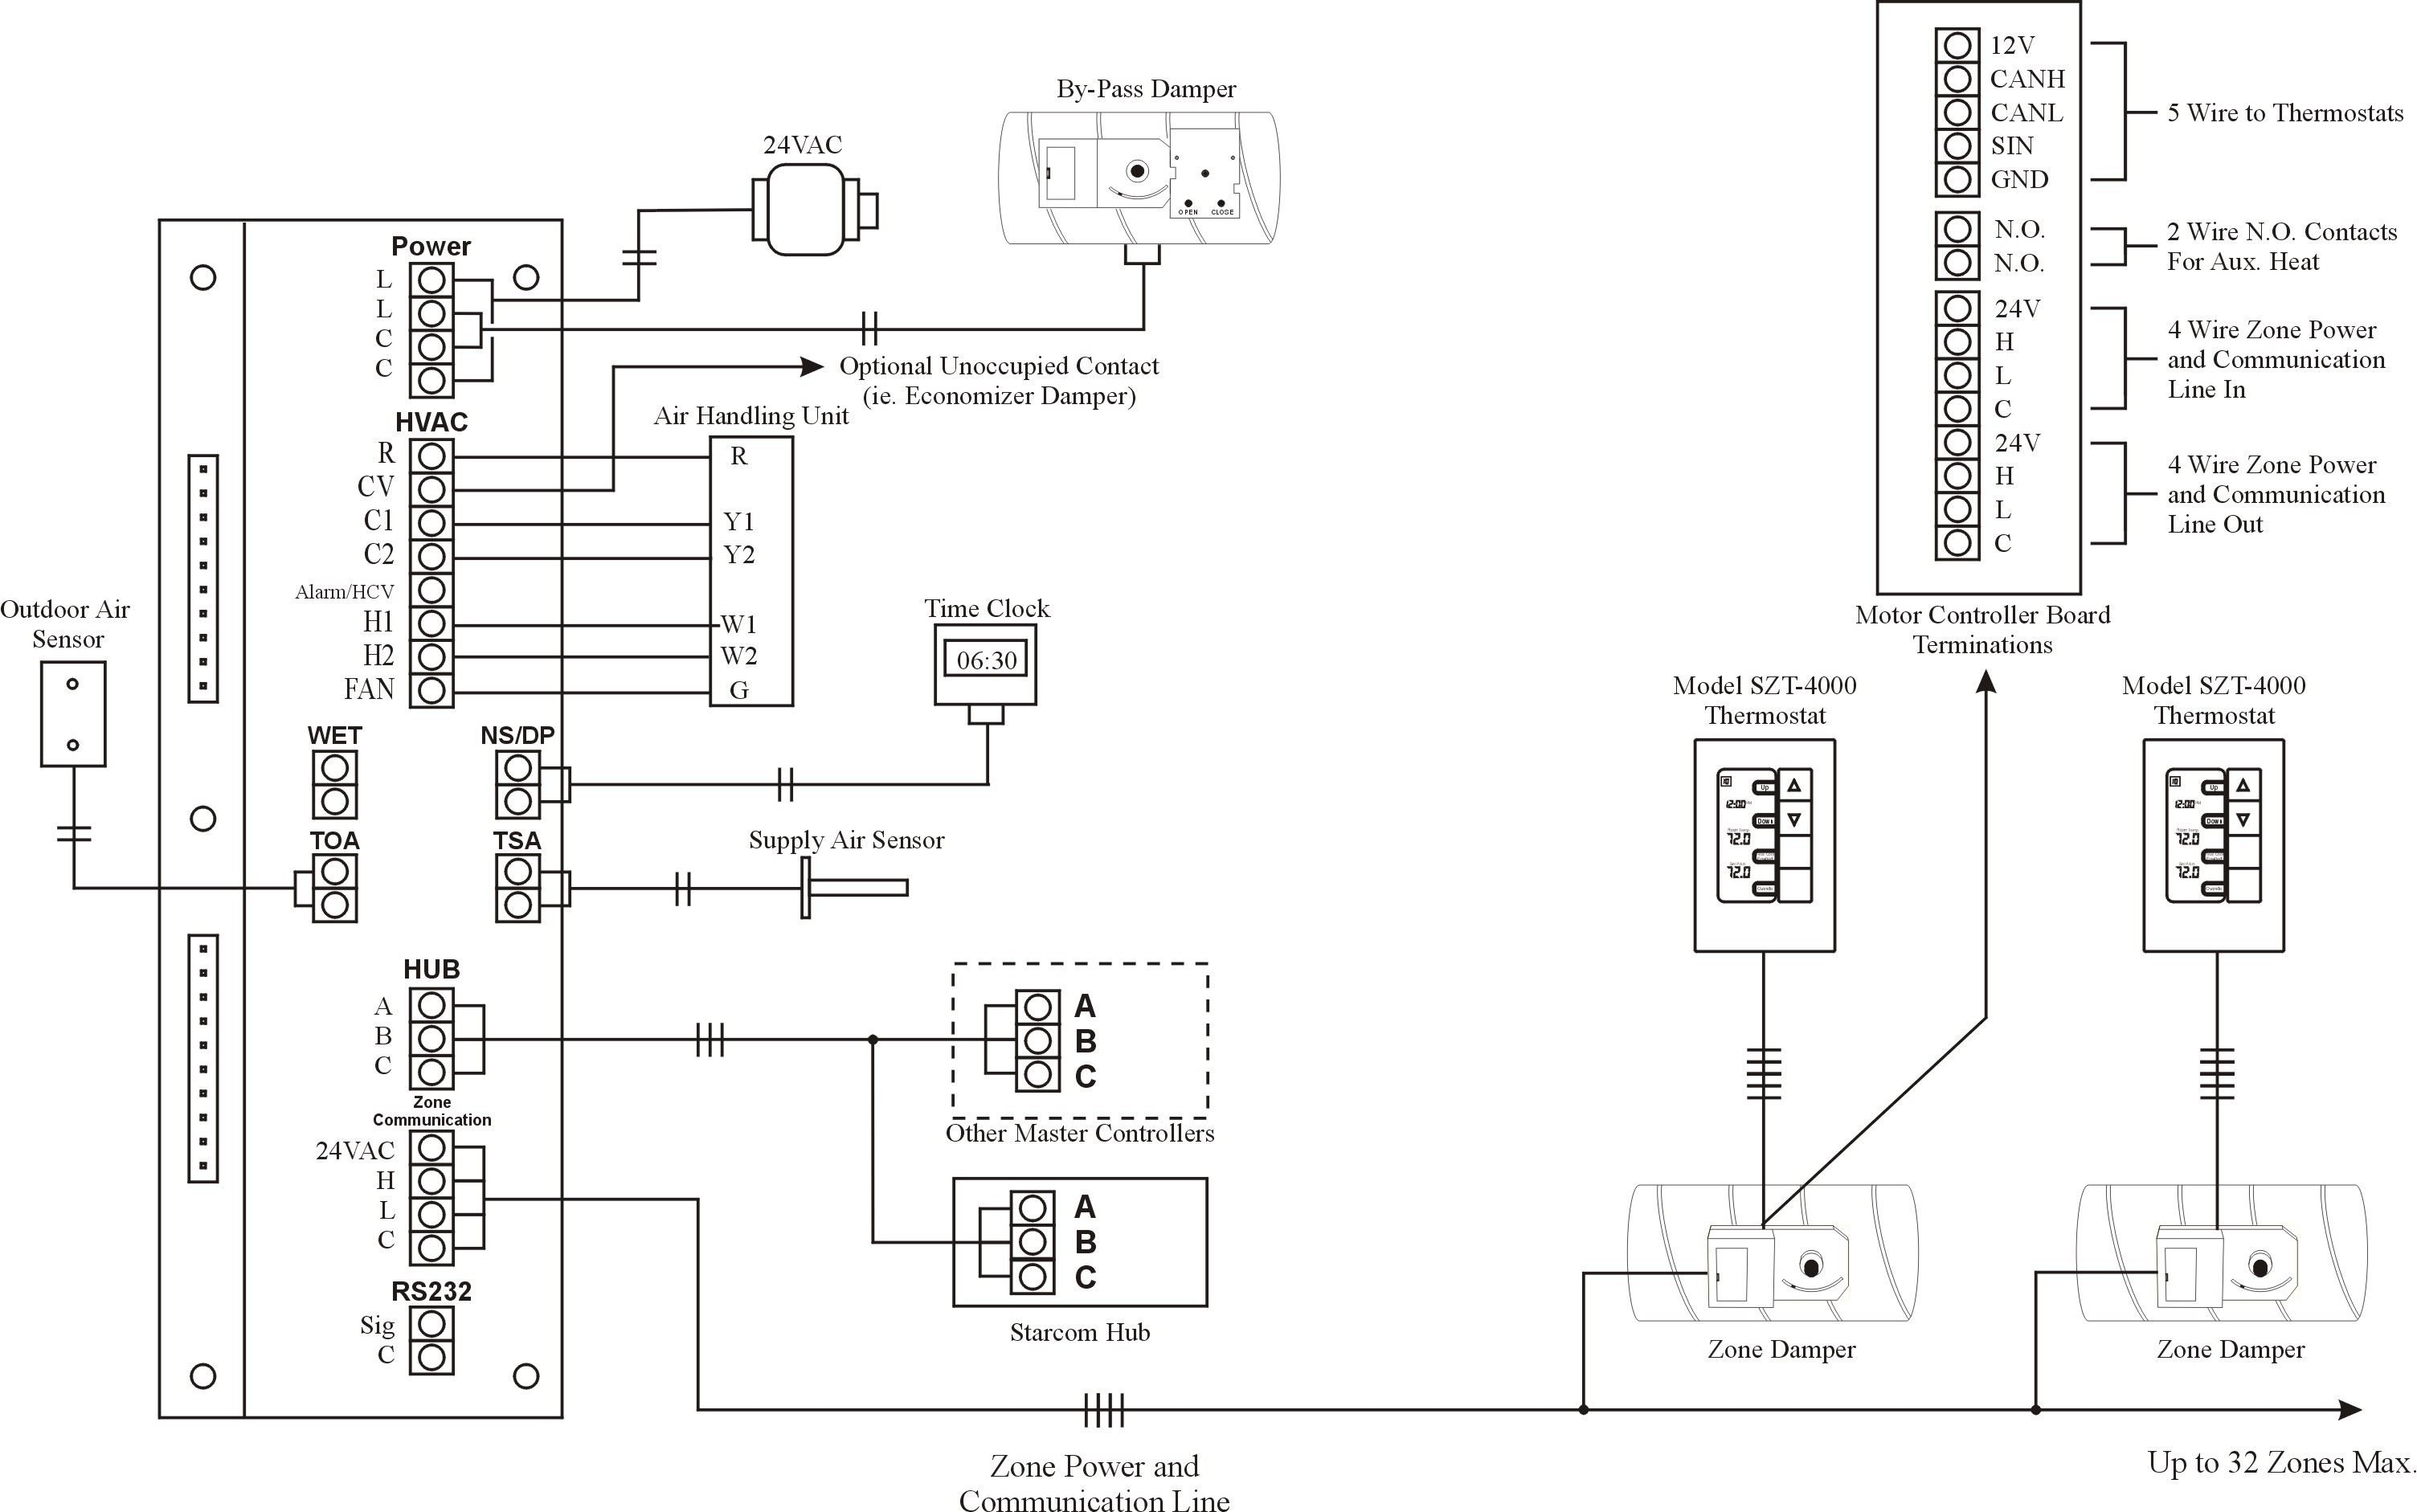 Mini Cam Security Wiring Diagram - Wiring Diagram G11  Wire Wiring Diagram For Cam on